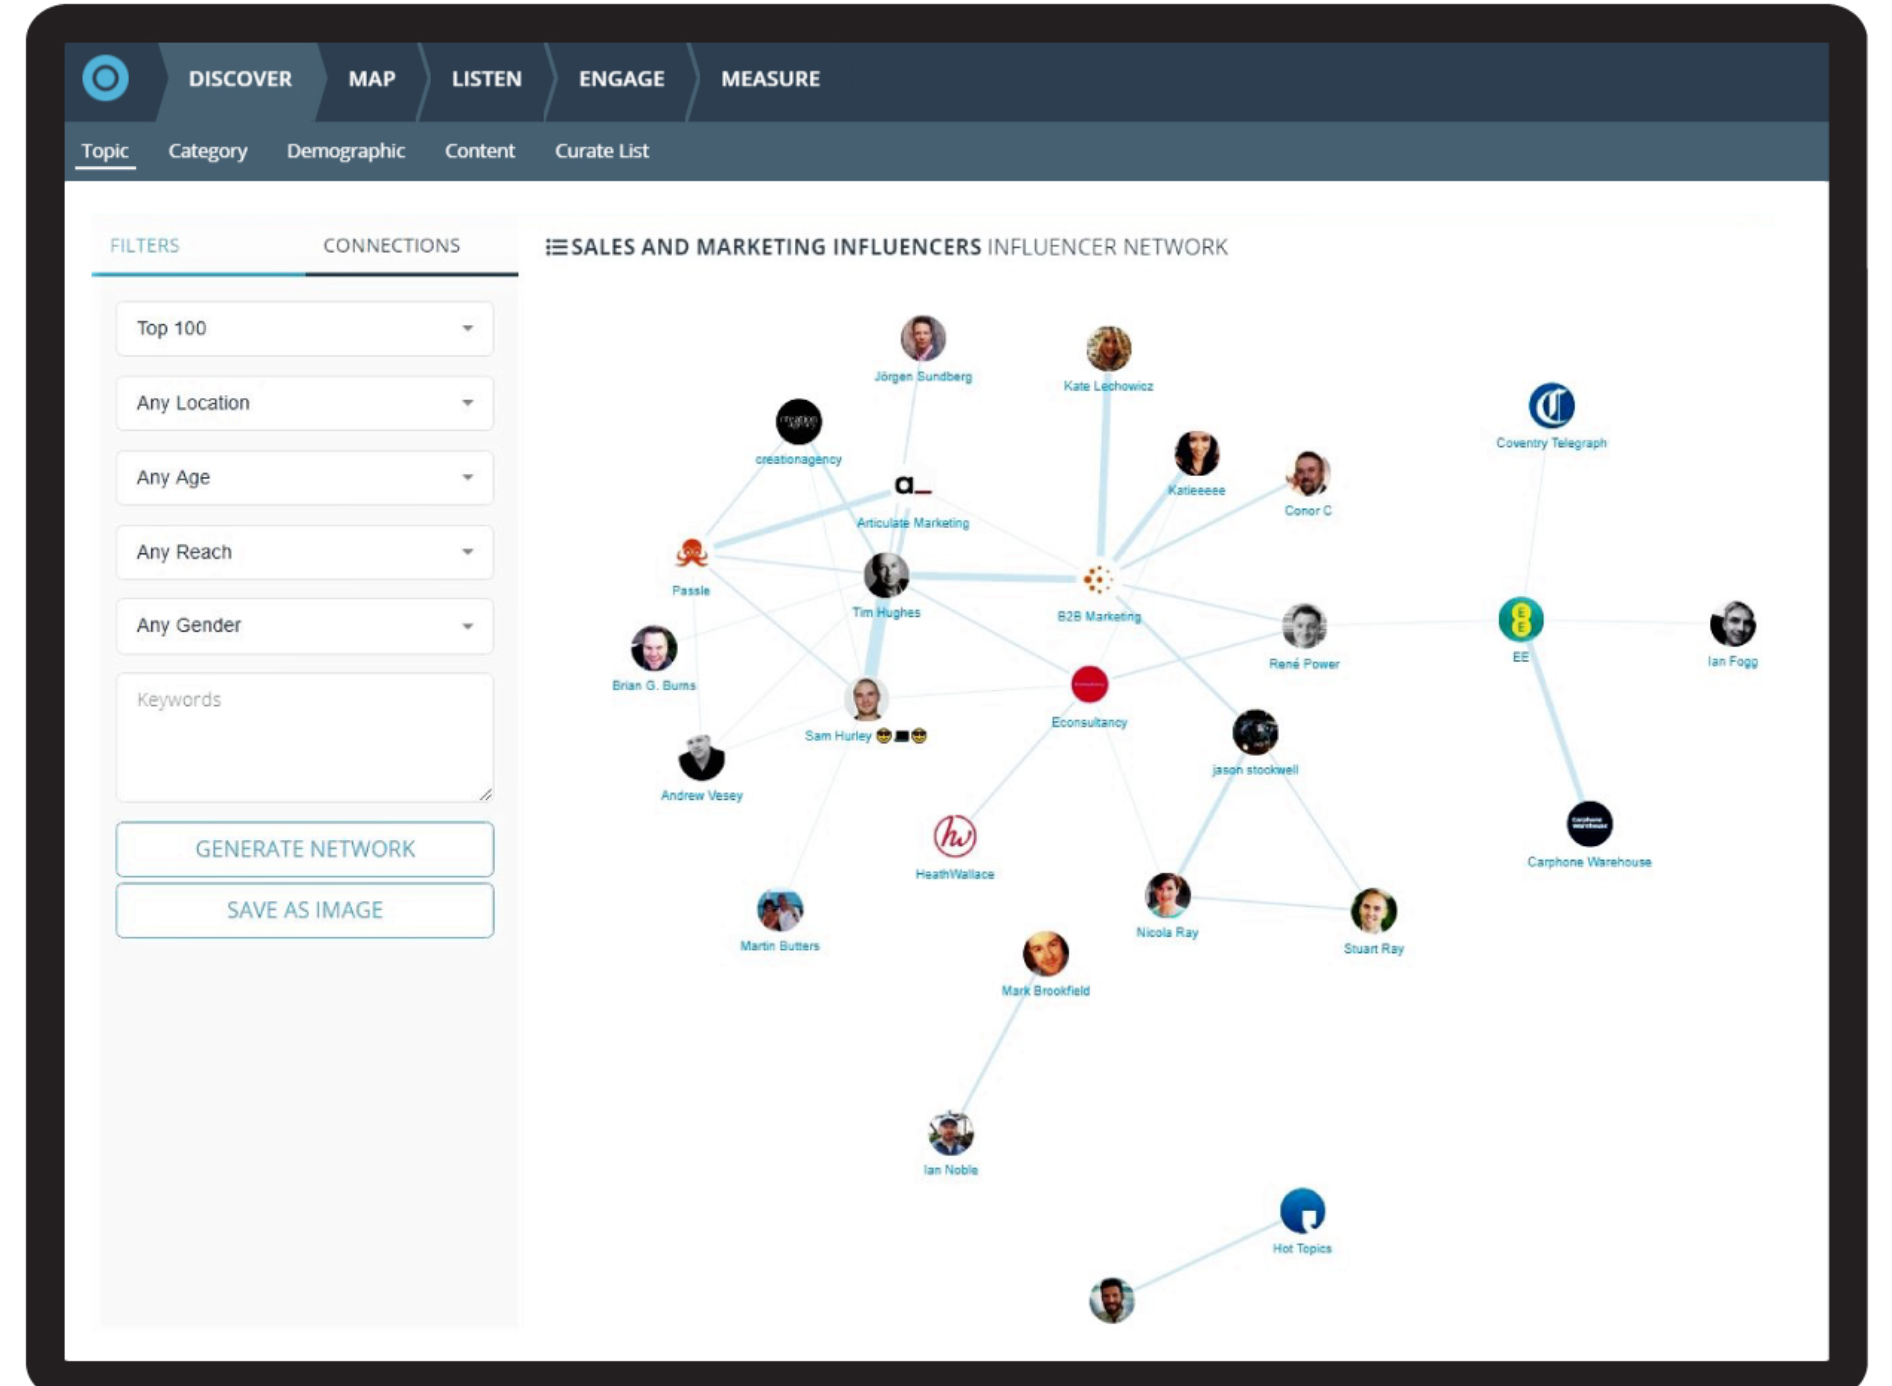 See how influencers interact together on an interactive network map, which can be filtered by location, age, gender and reach